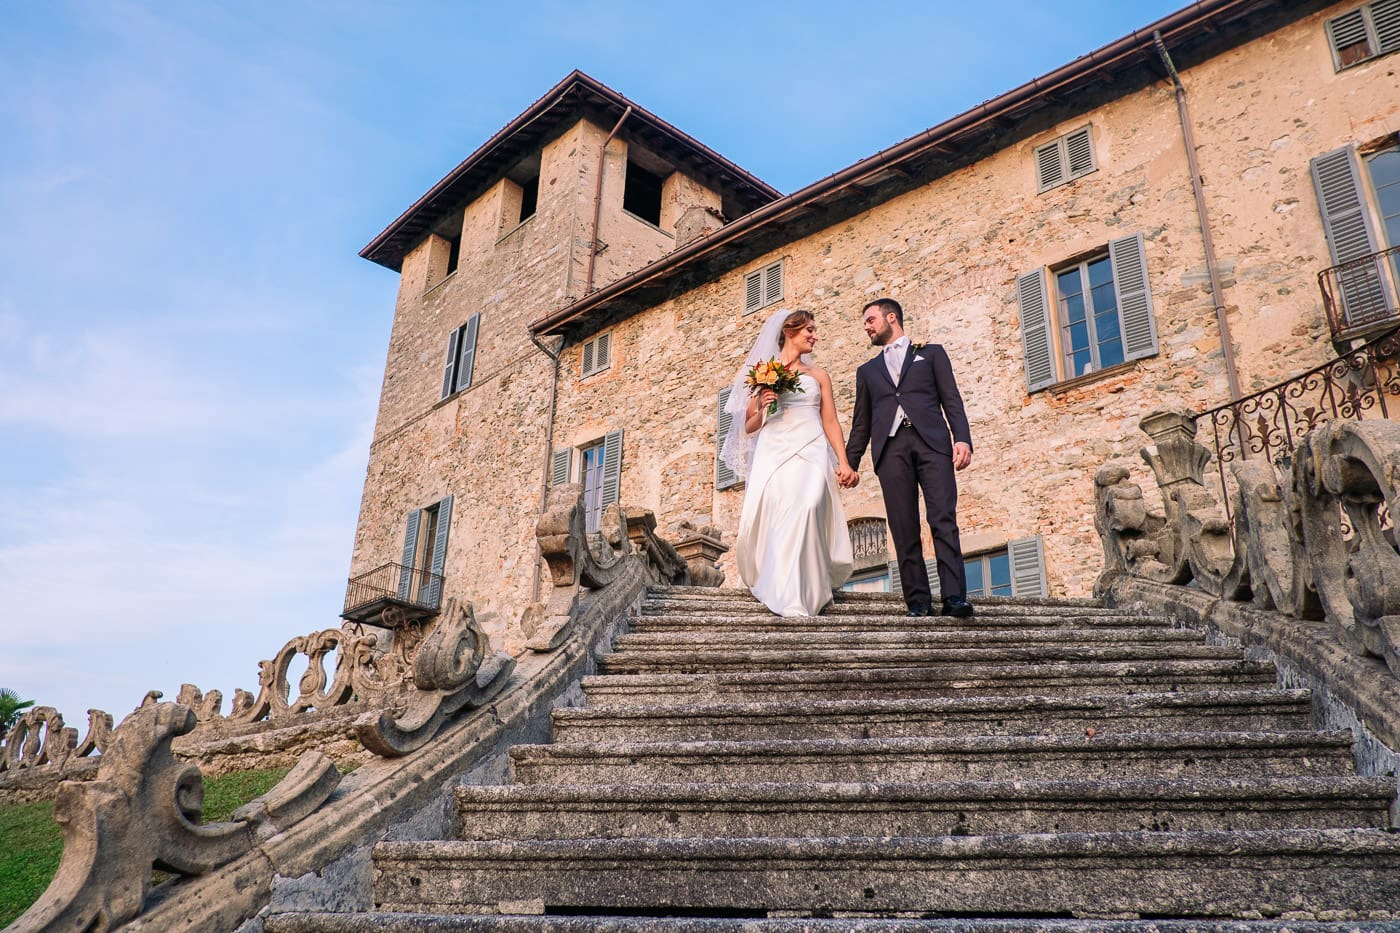 coppia di sposi scale matrimonio castello durini